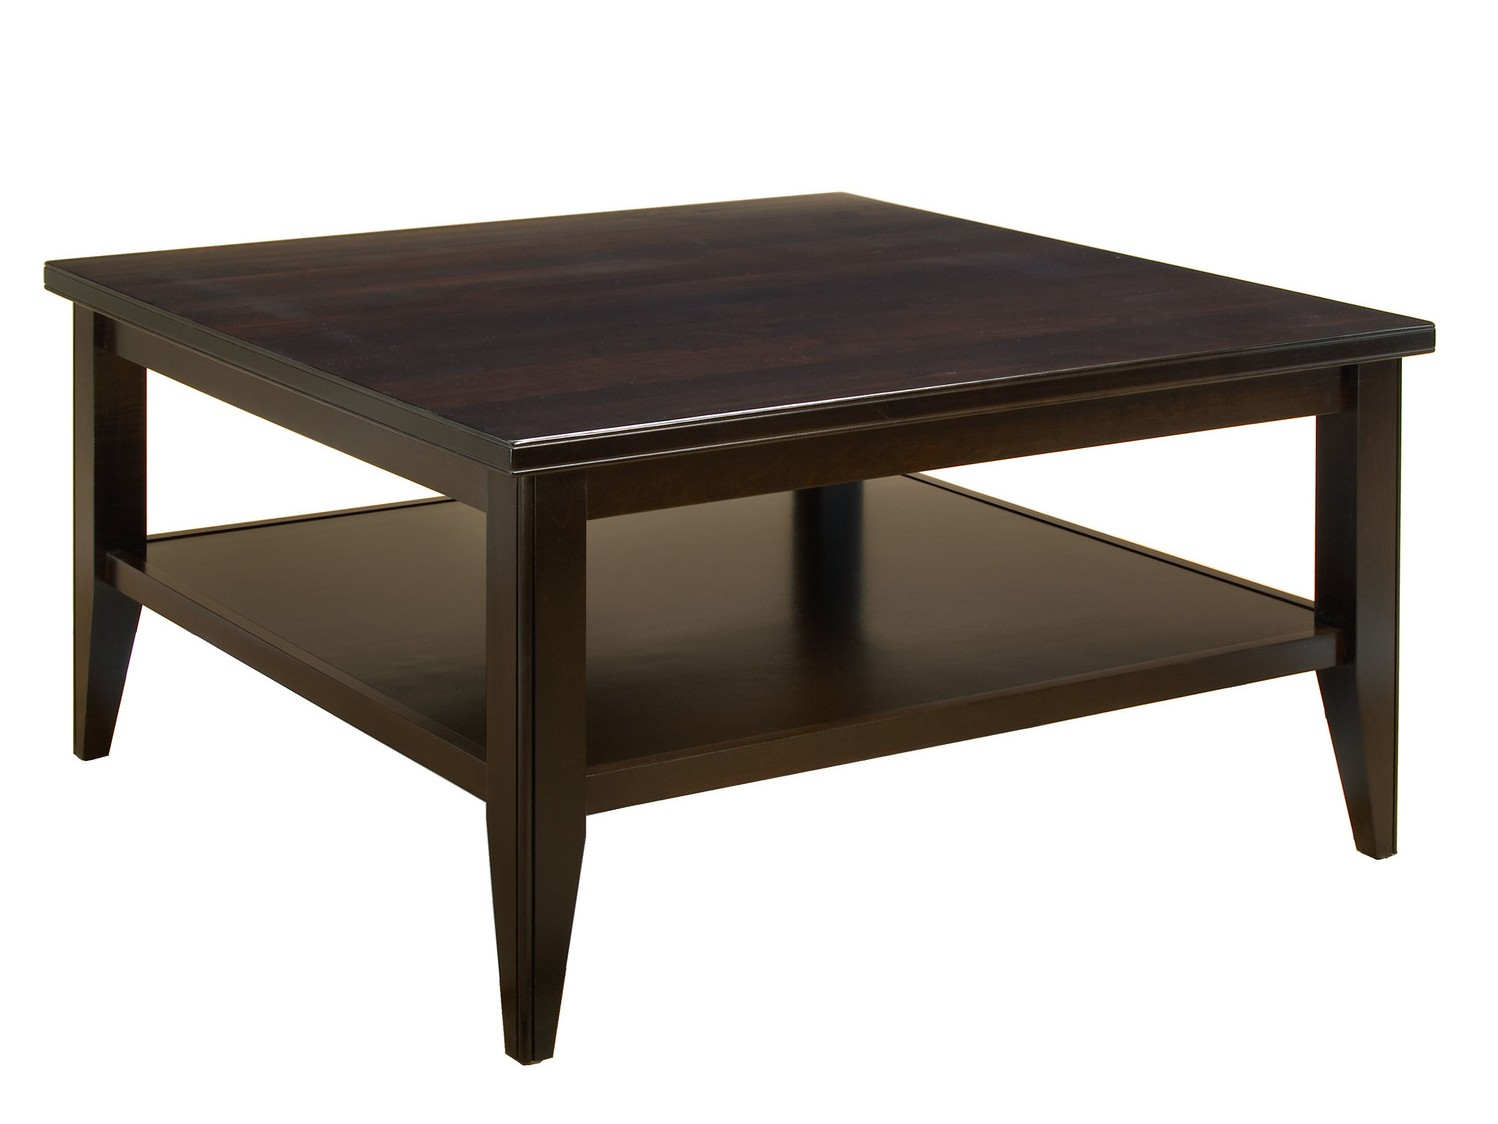 Traditional Round Coffee Table Tables - Traditional Coffee Tables CoffeTable